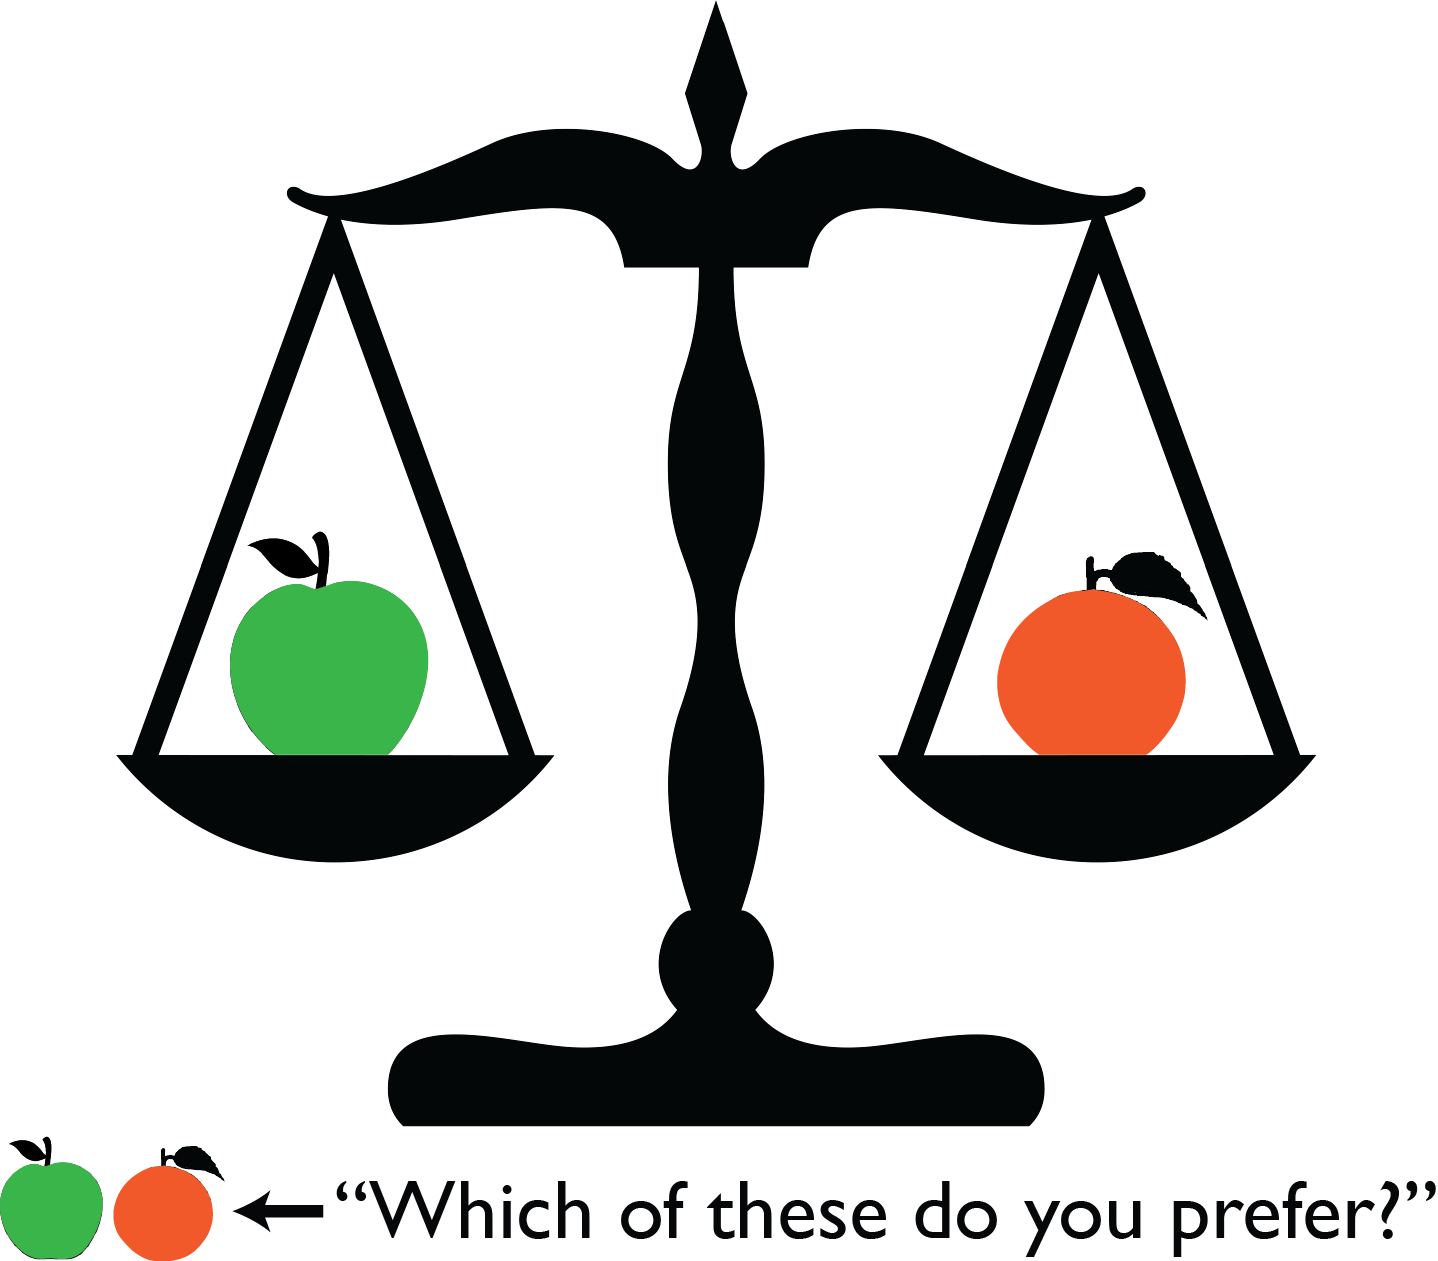 Decision-making research focuses on how we deliberate over the costs and benefits of our options (e.g., comparing apples and oranges)